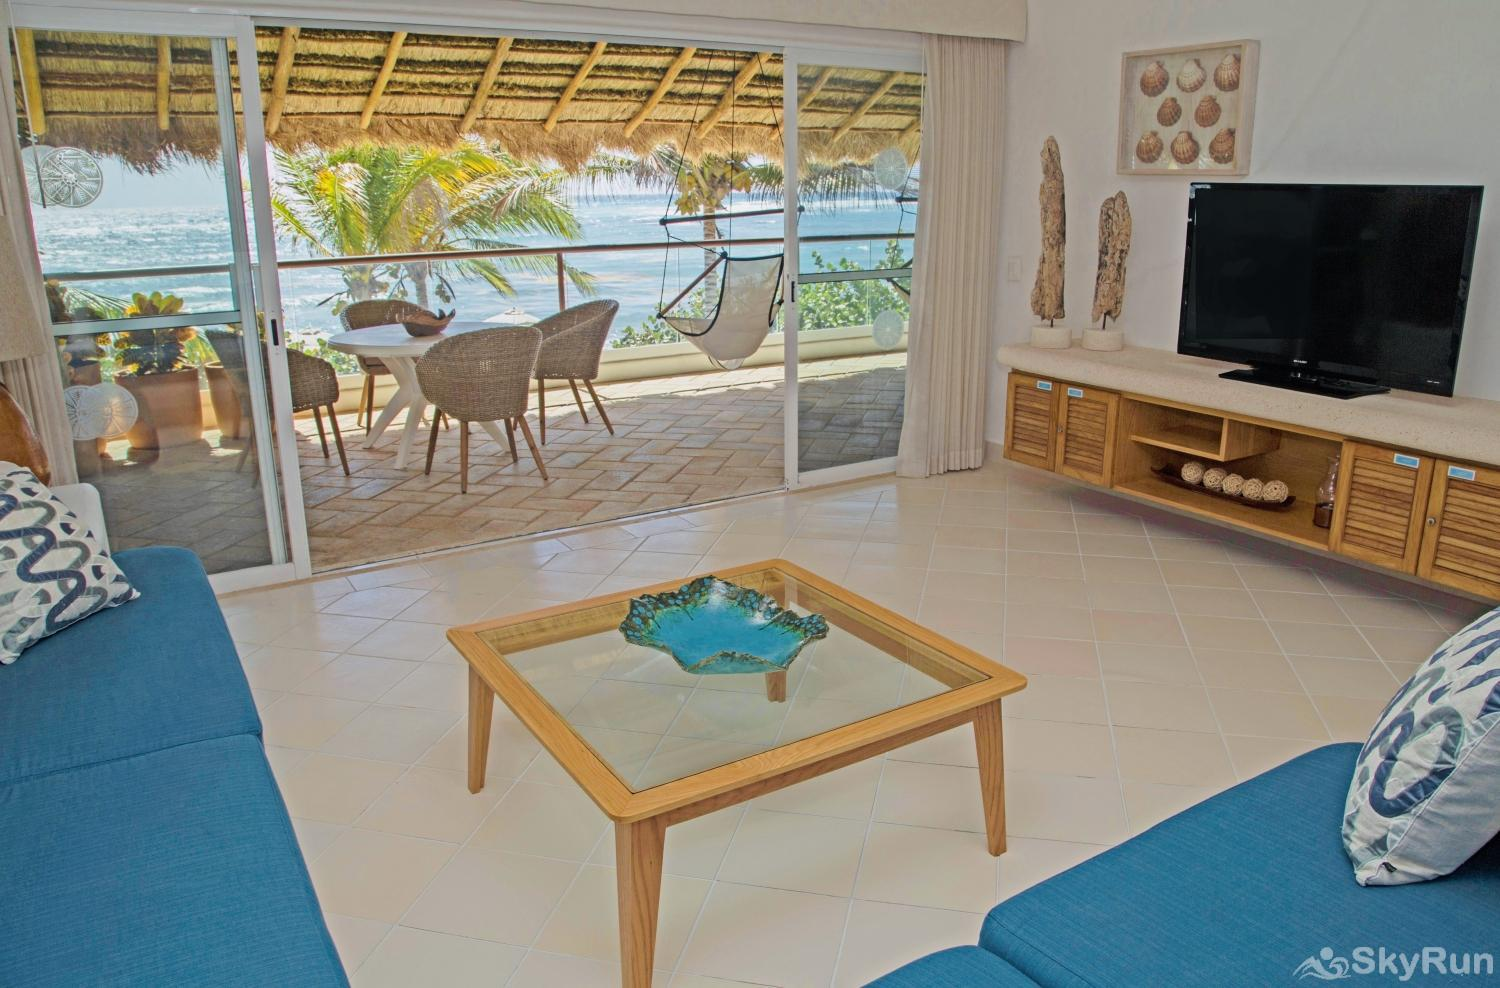 Charming Beachfront Condo Villa in Mexican Caribbean SkyRun Beachfront Villa